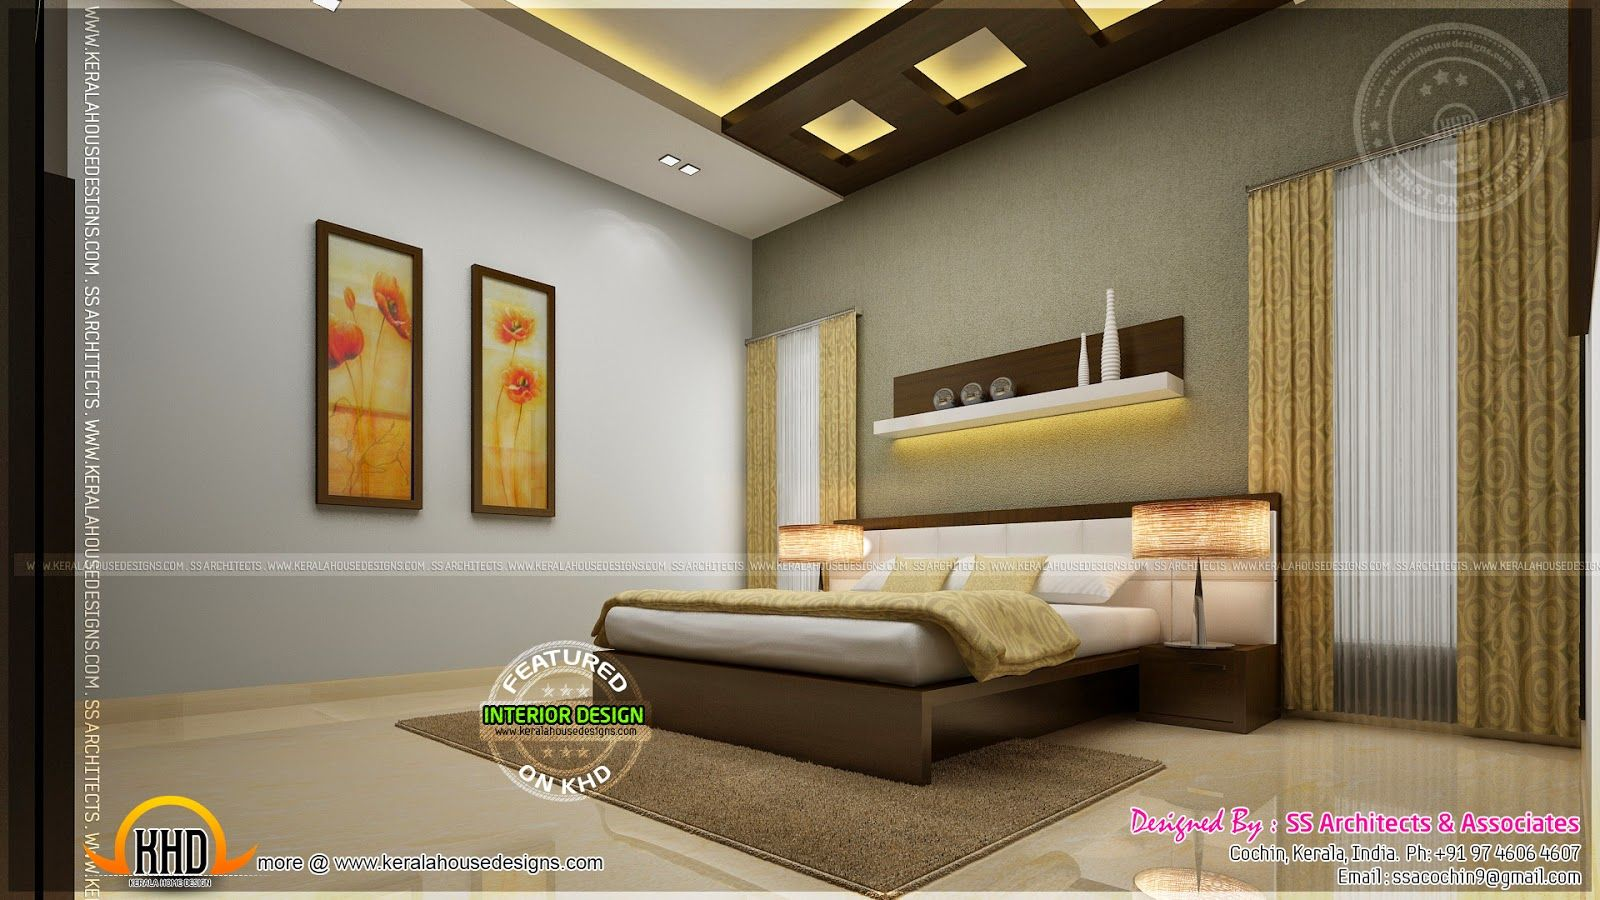 Indian master bedroom interior design google search saravanan bella vista pinterest Master bedroom size in india